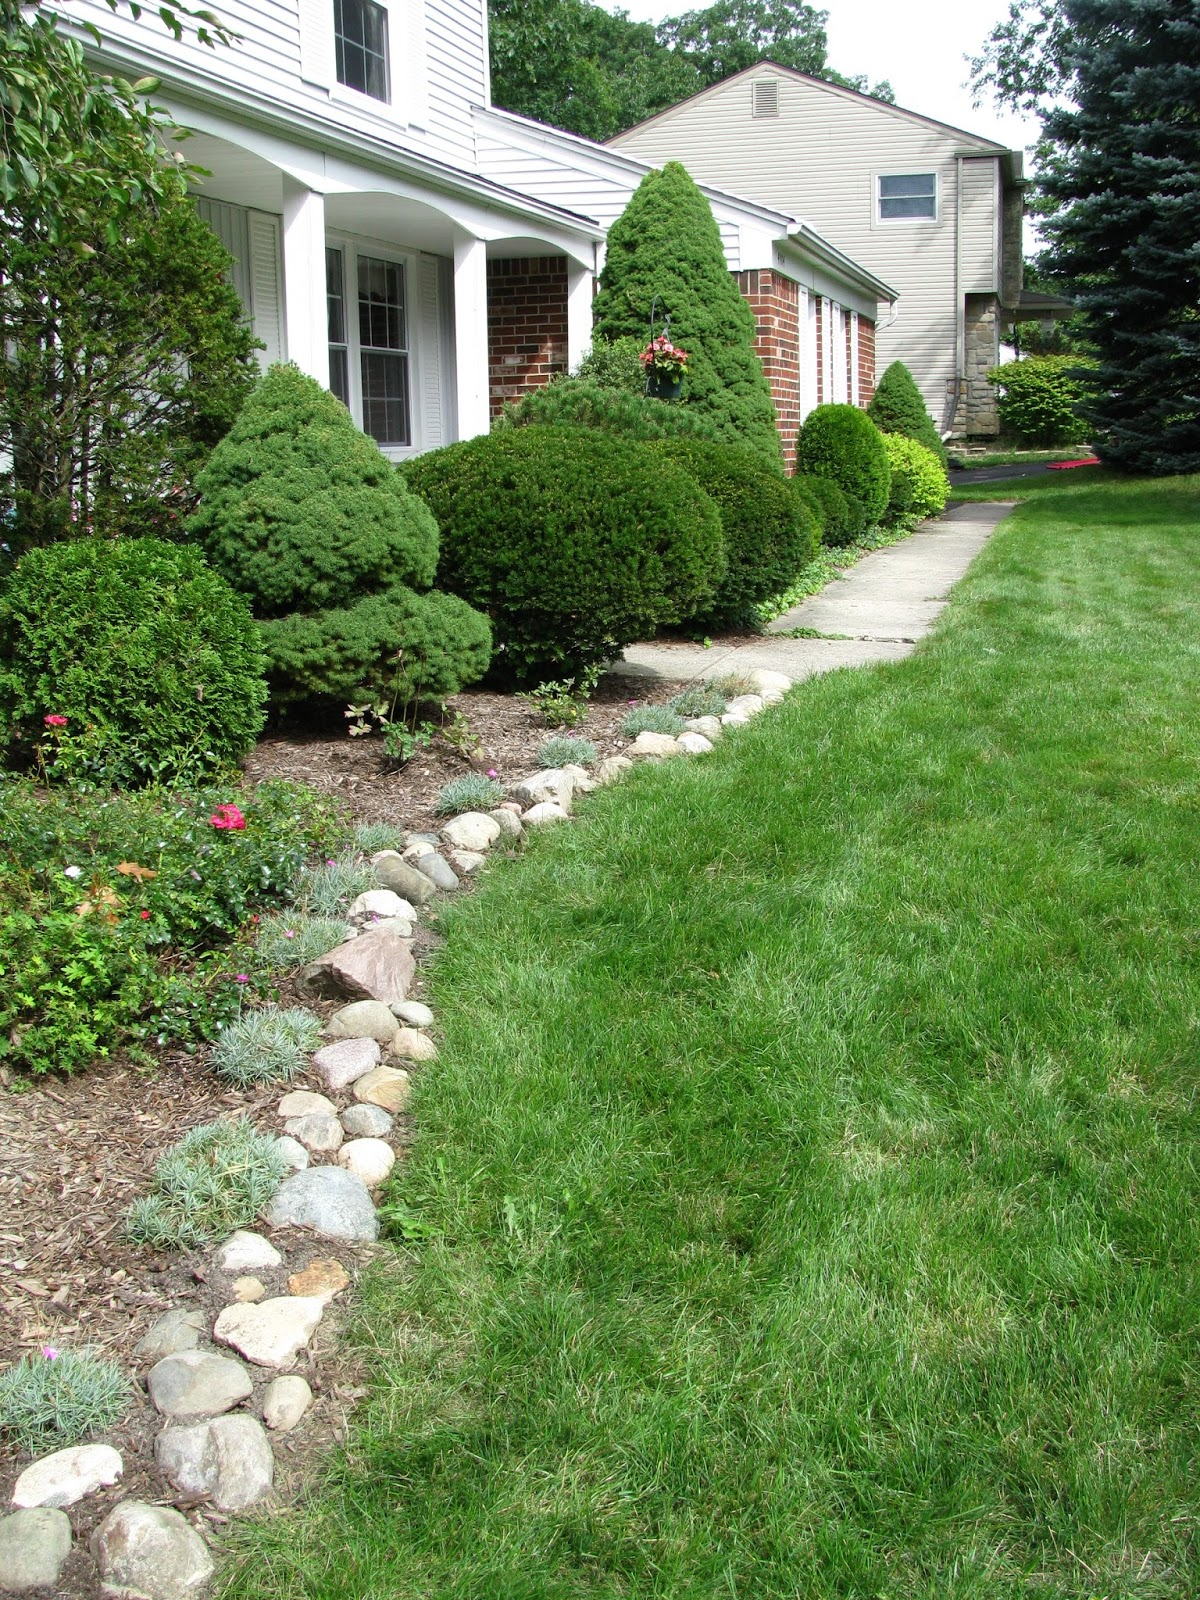 Designing Dreams On A Dime Dream Driveway And Luxurious Landscaping